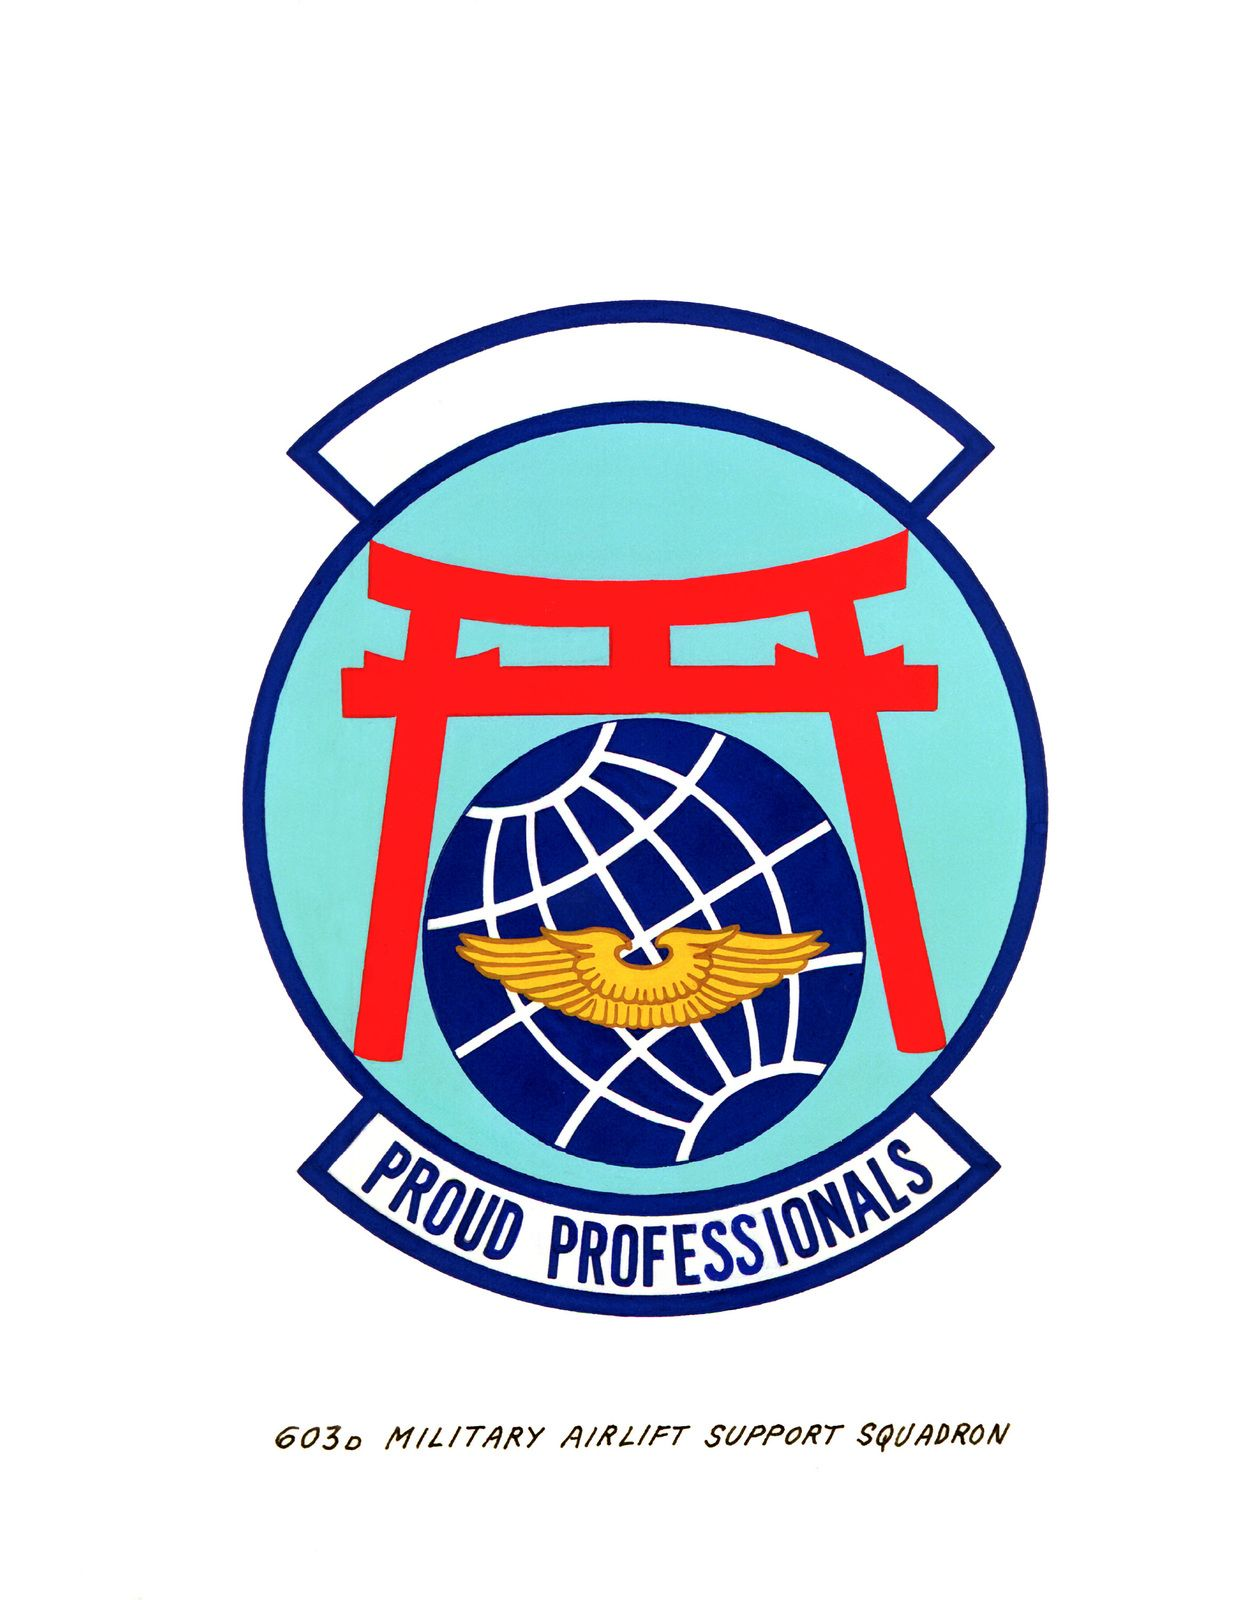 603rd Logo - Approved Insignia for: 603rd Military Airlift Support Squadron ...